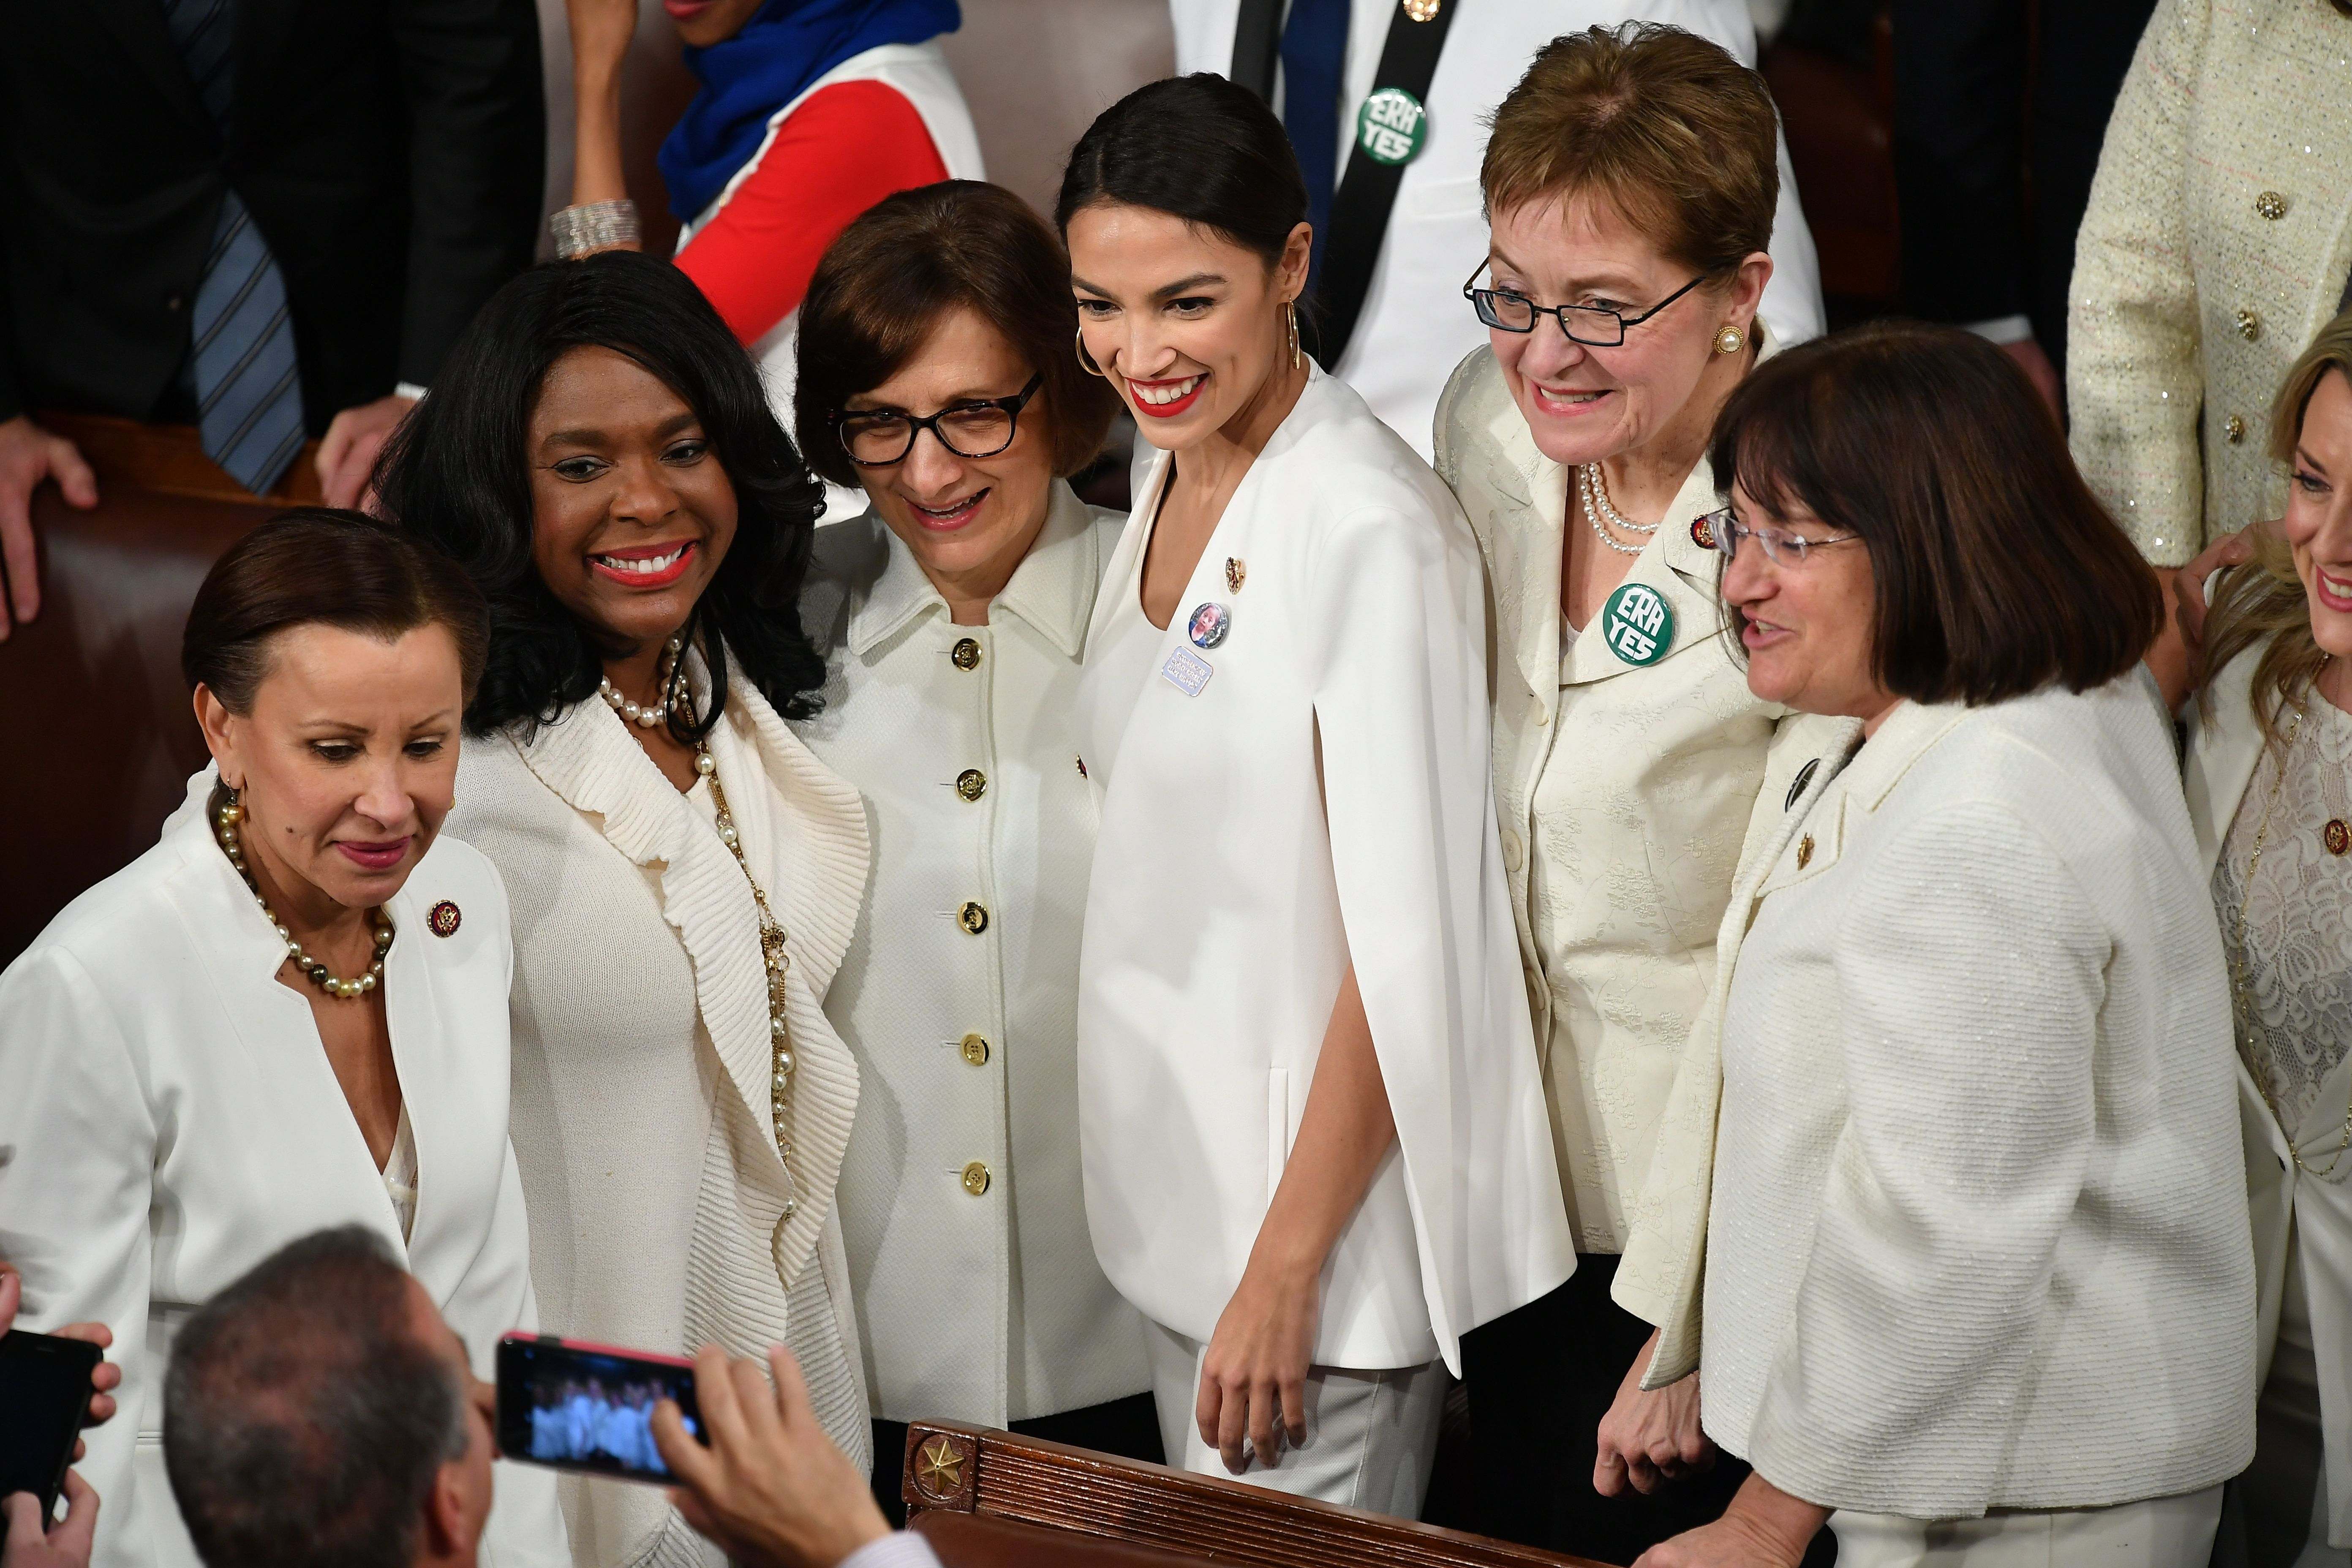 New York Representative (D) Alexandria Ocasio-Cortez (C) poses for a picture with other women ahead of U.S. President Donald Trump's State of the Union address at the US Capitol in Washington, D.C., on February 5, 2019.